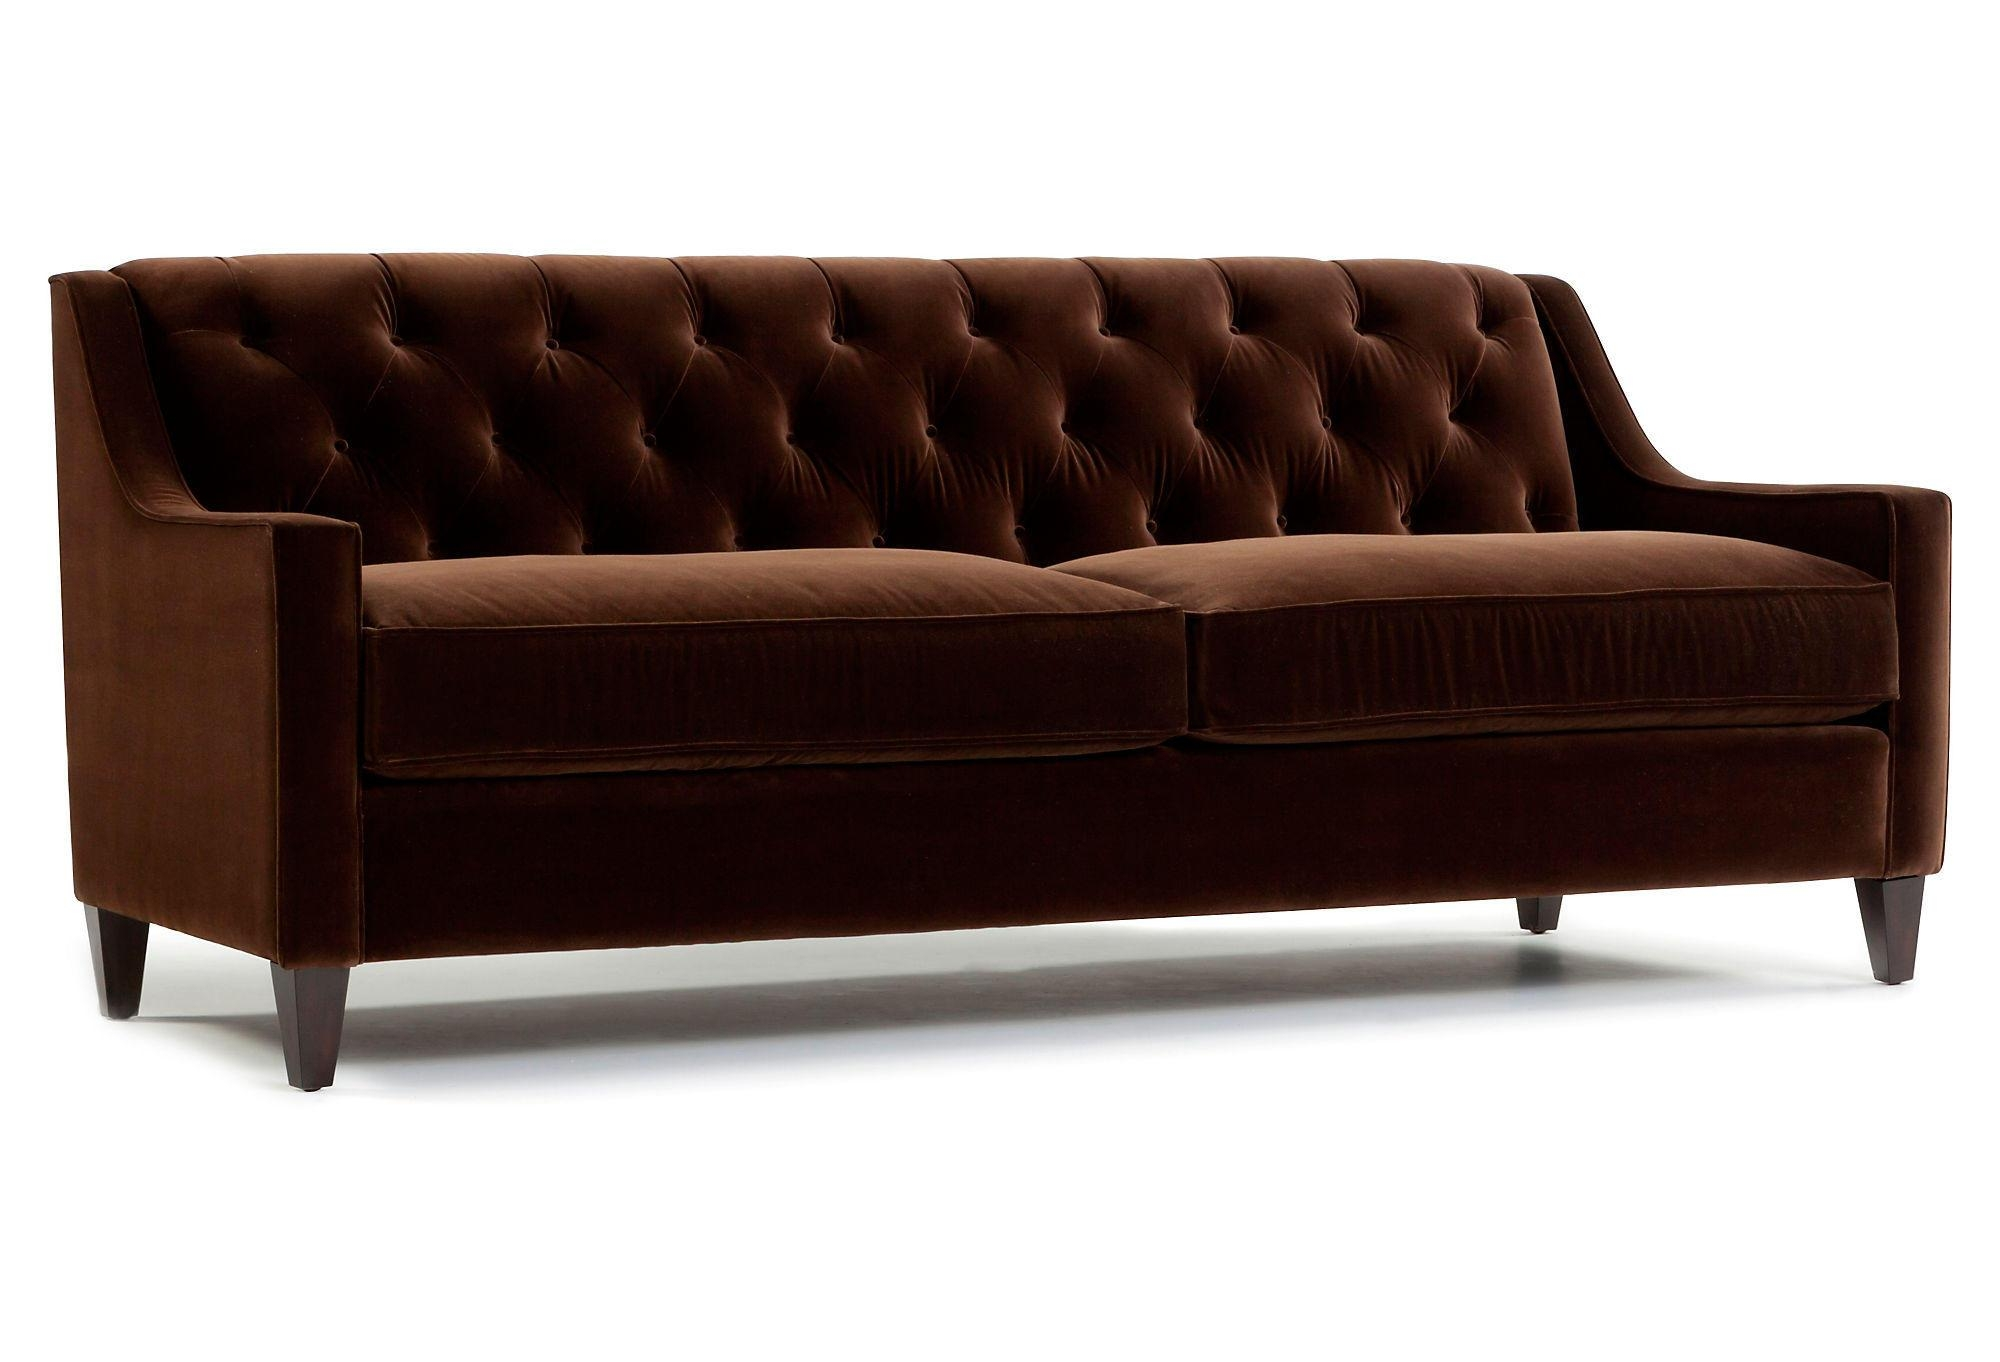 Velvet Tufted Sofa (View 4 of 20)